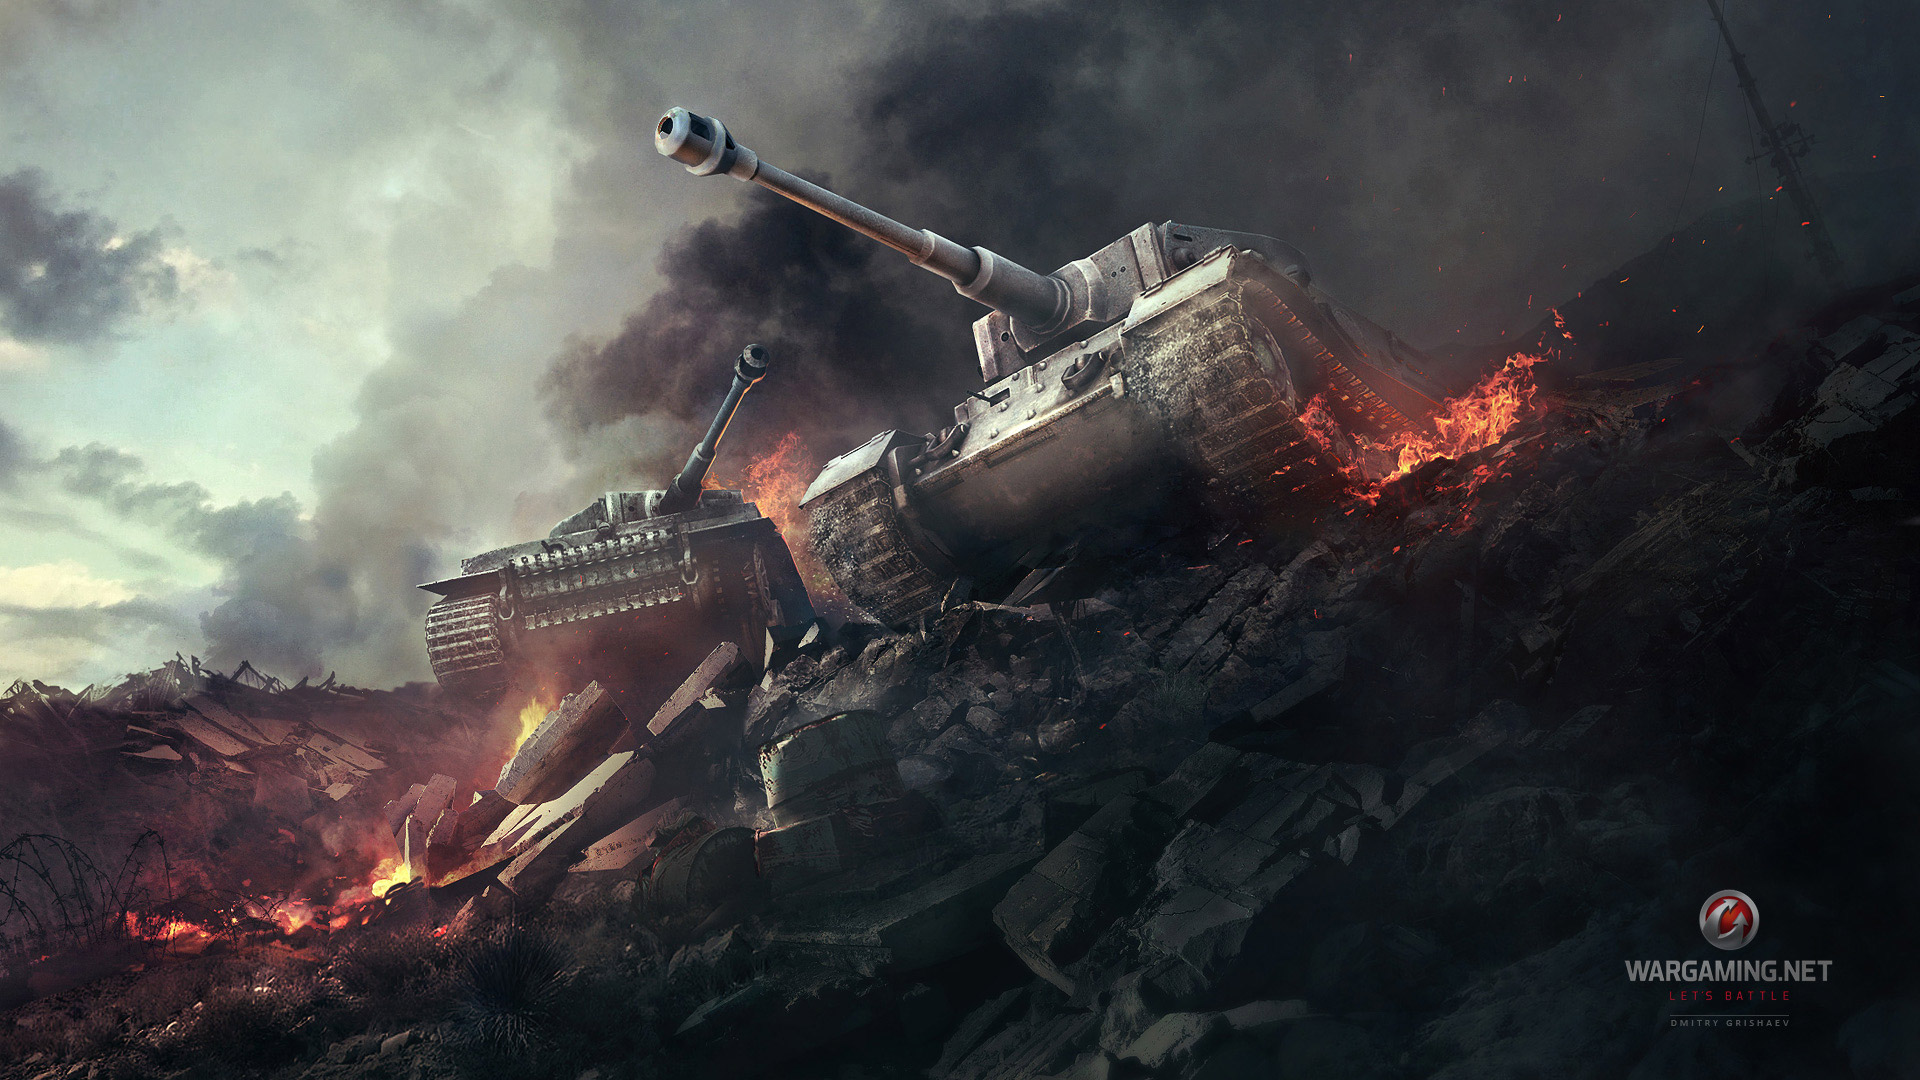 World of Tanks Wallpaper in 1920x1080